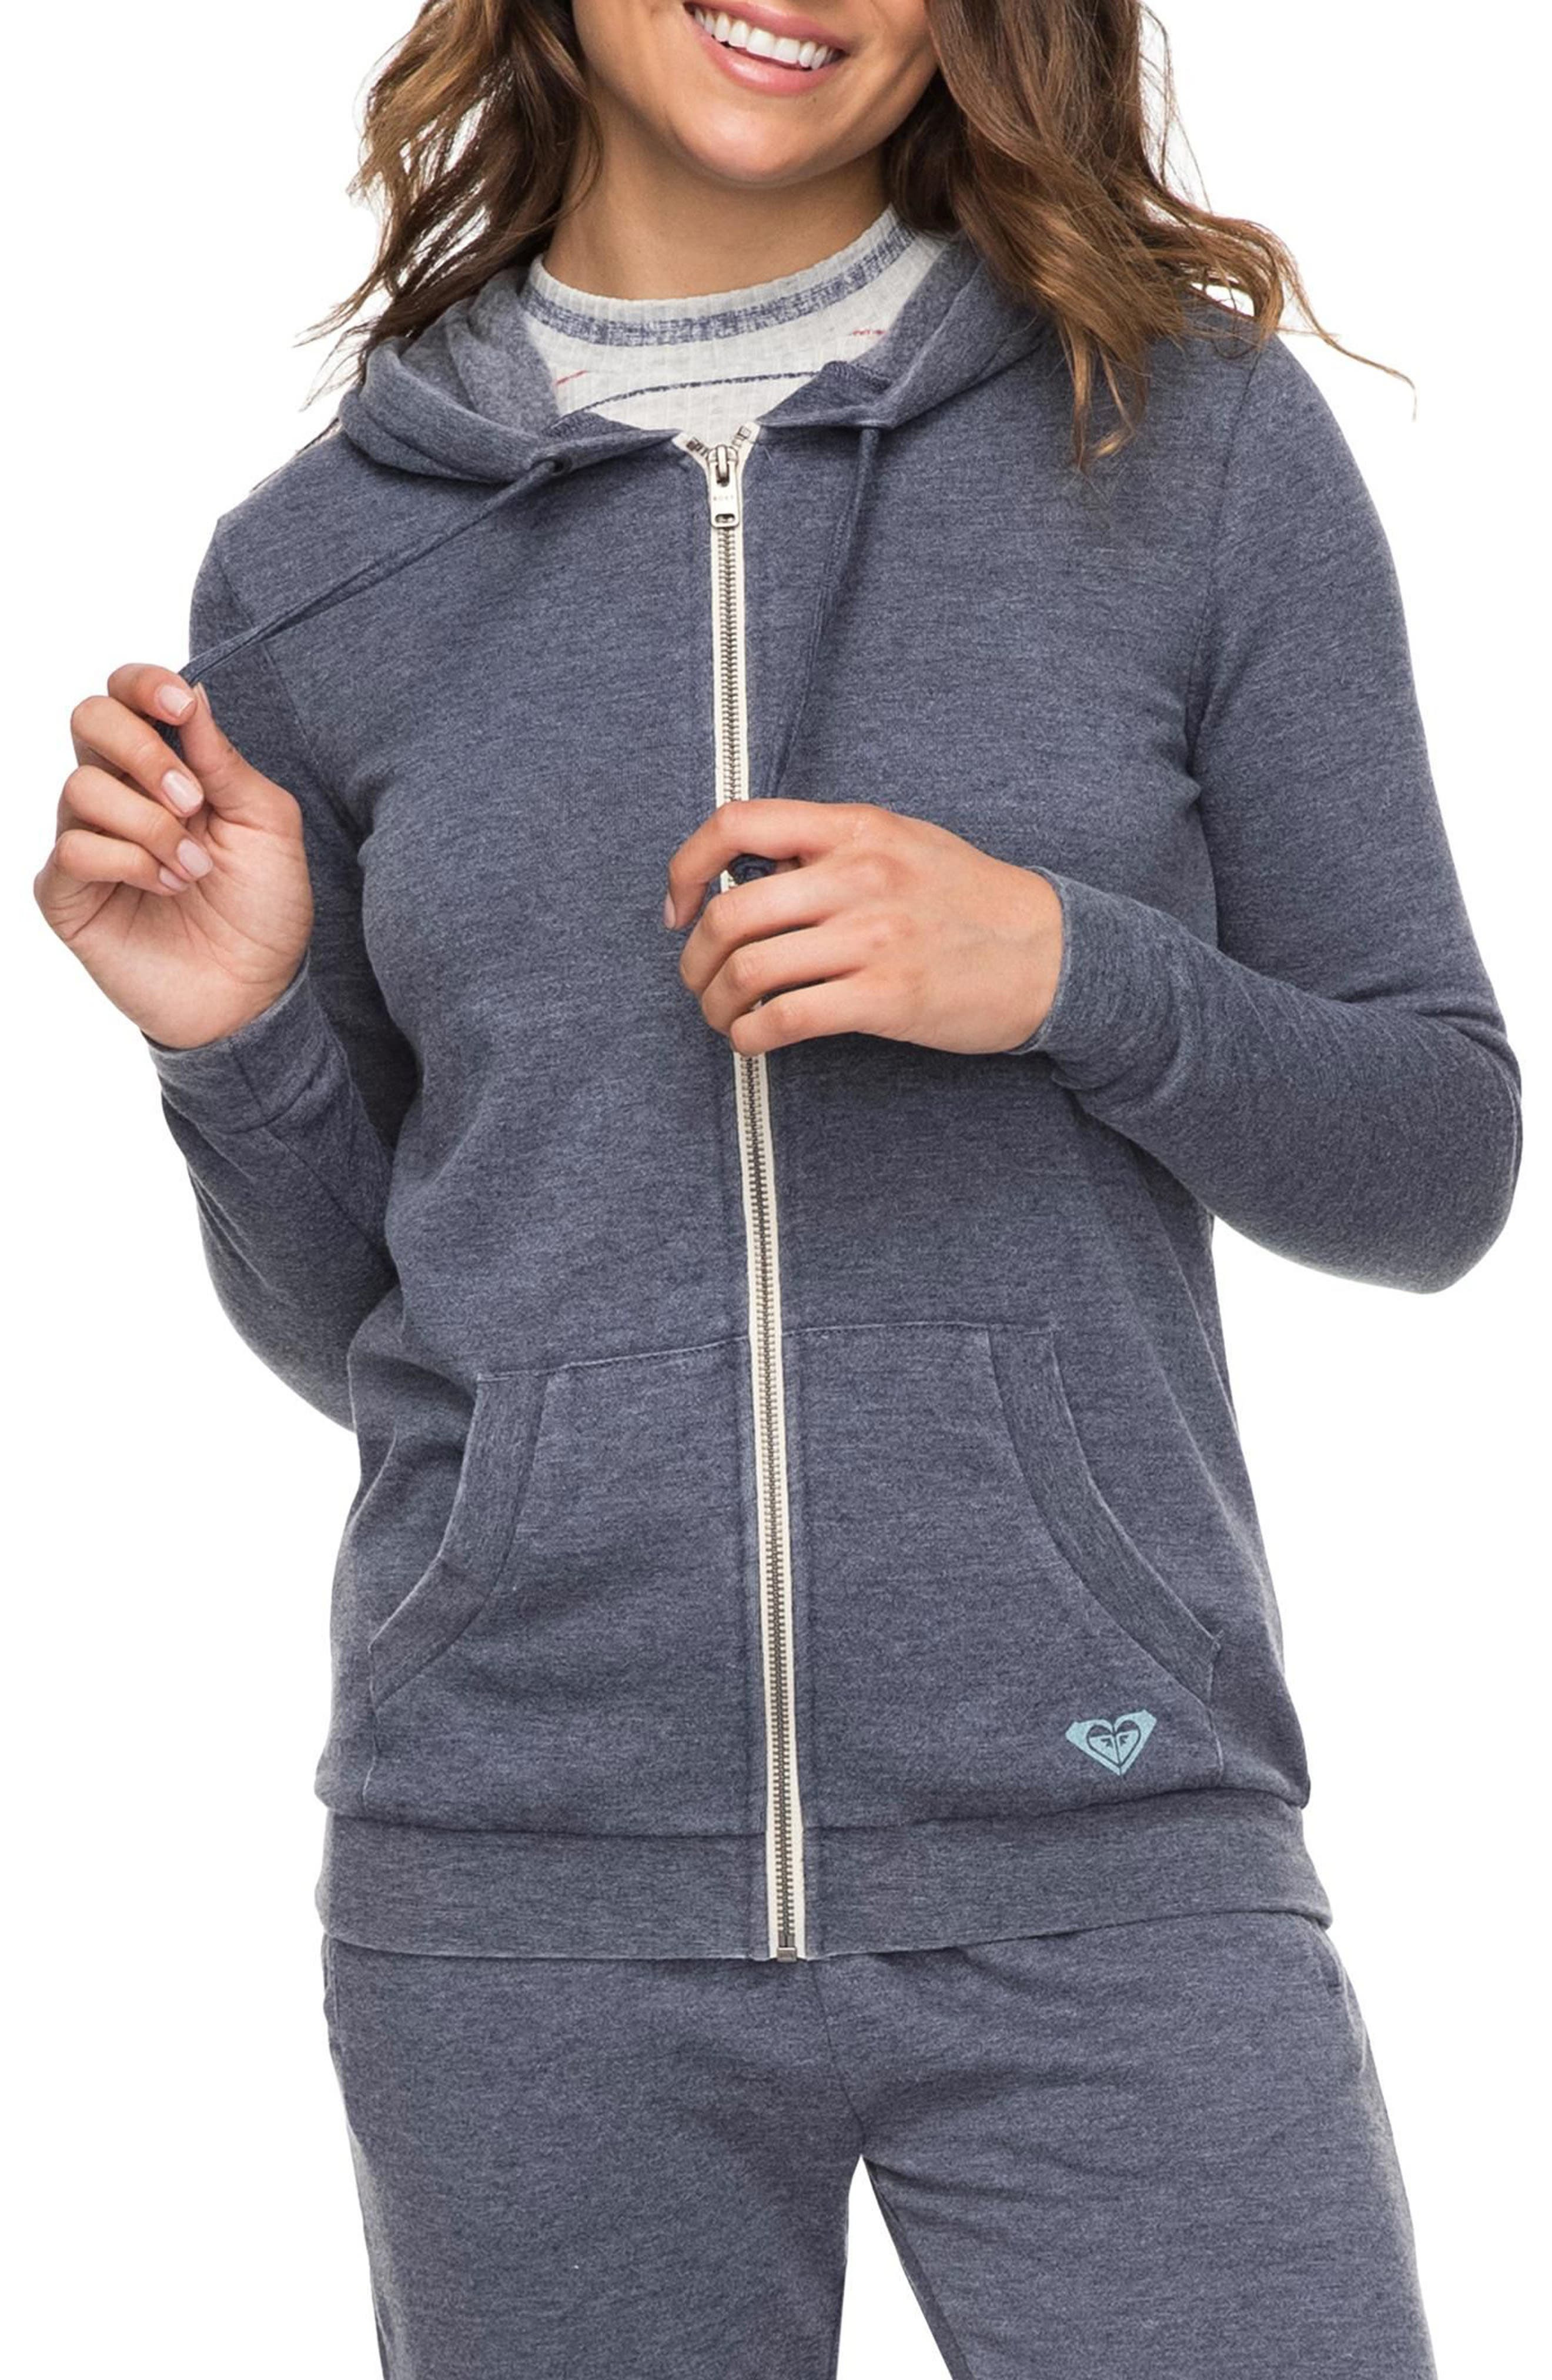 Groovy Stardust Hoodie,                         Main,                         color, Dress Blues